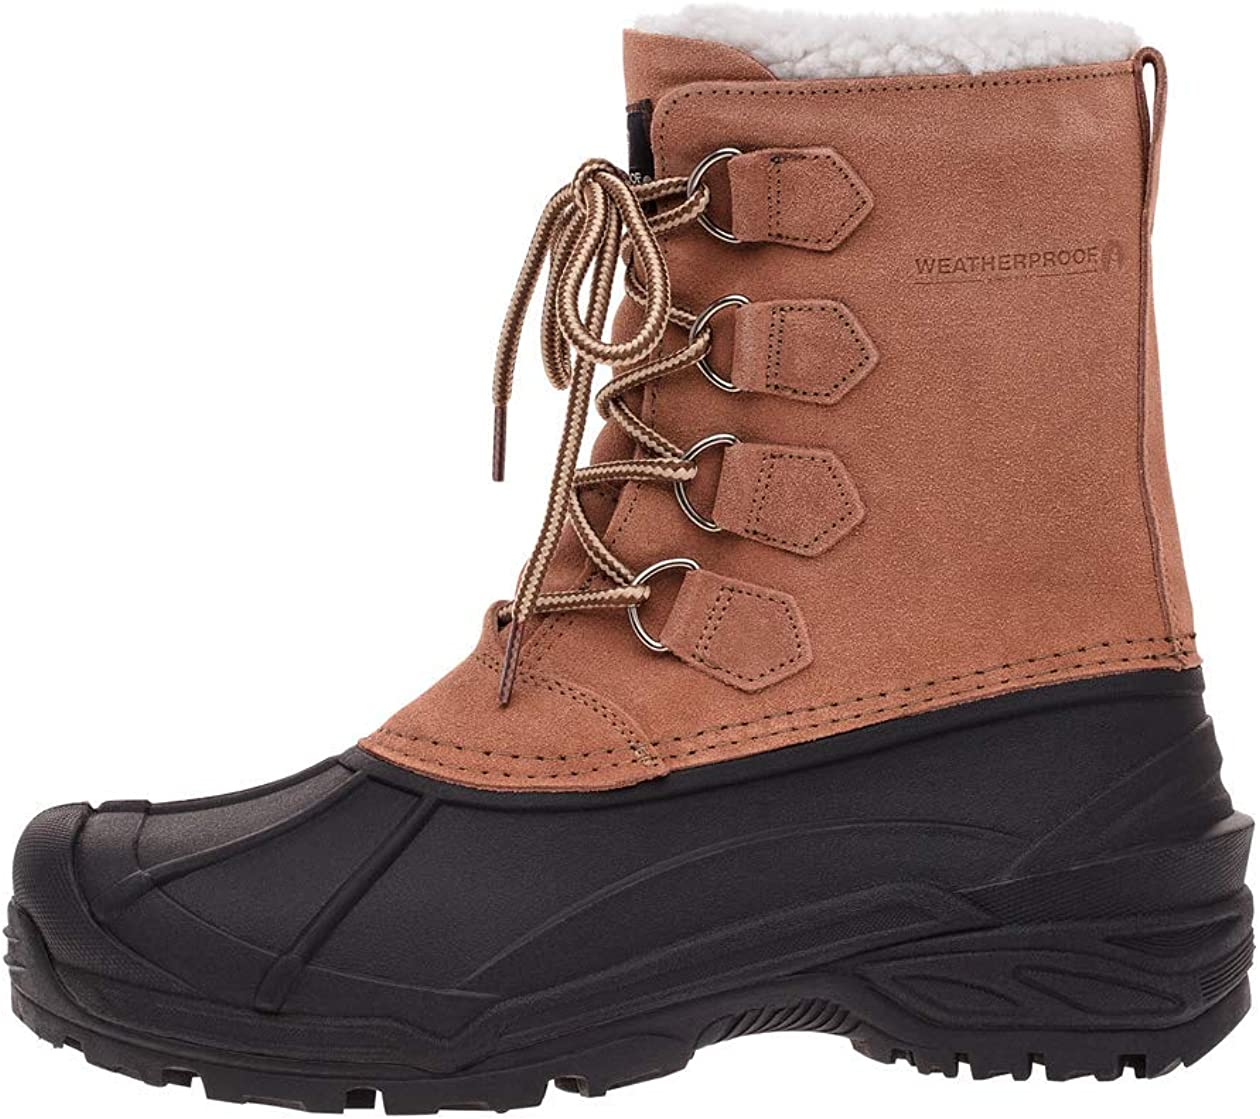 Max 44% OFF Weatherproof Mens Max 66% OFF Snow Boots with All-Weather Insul Lace Closure